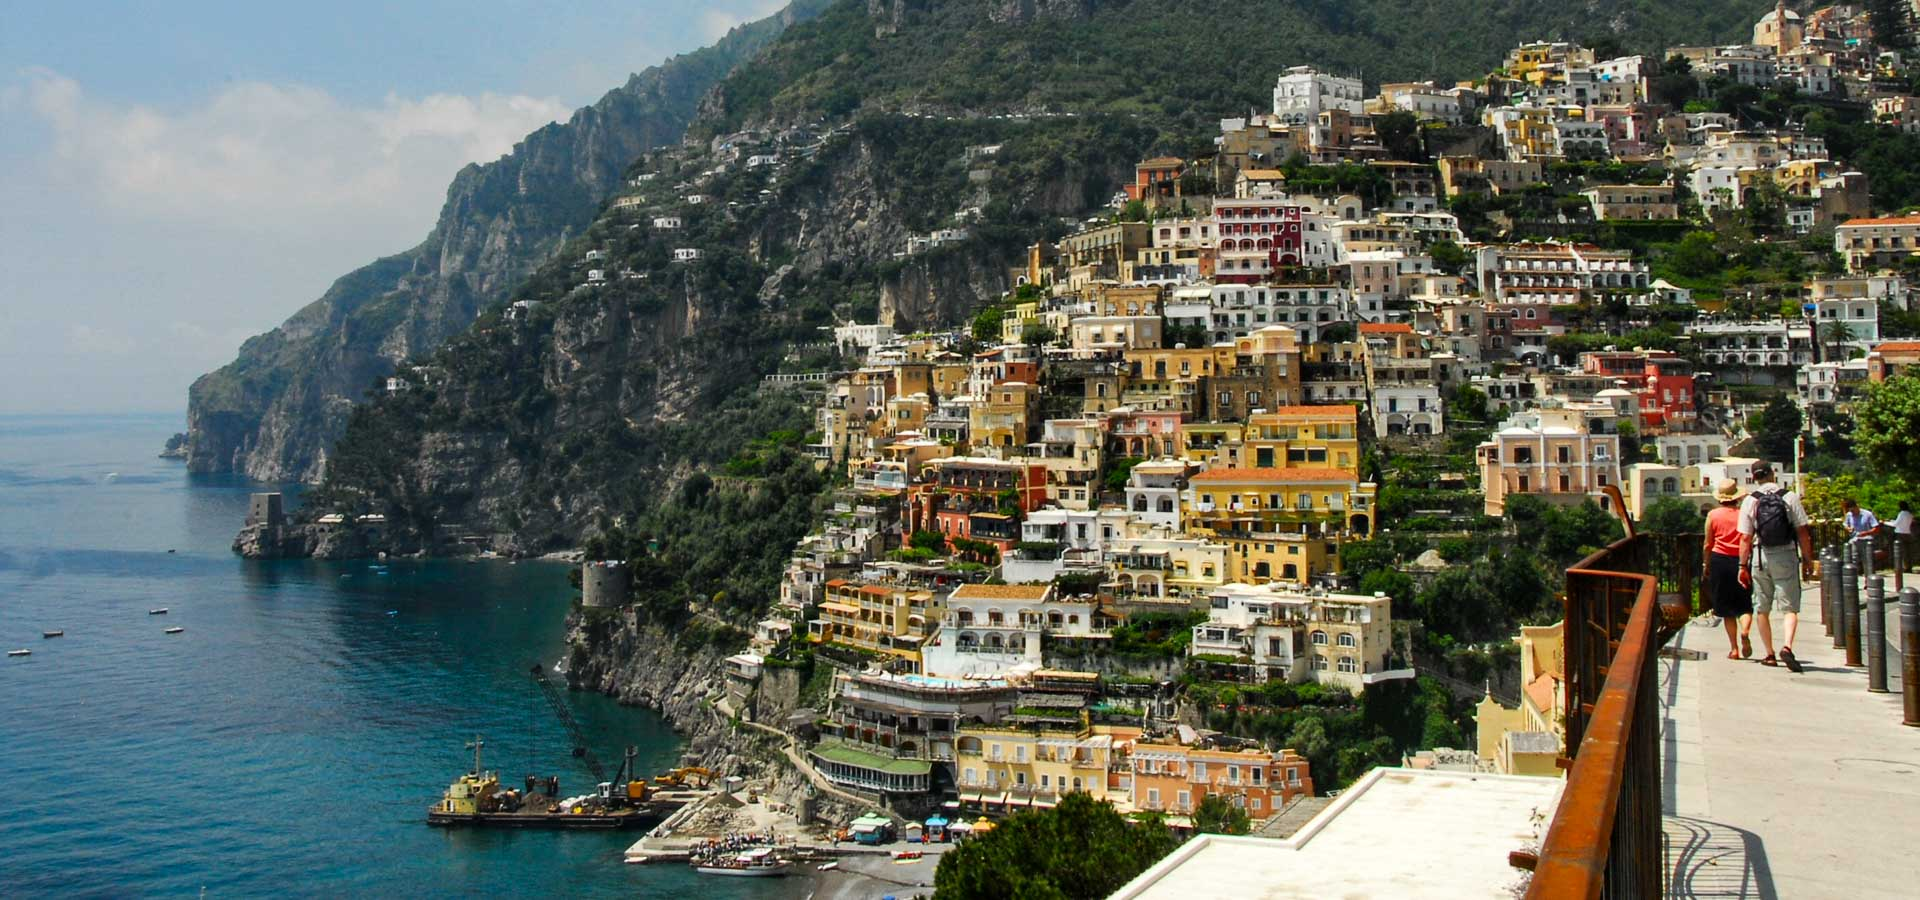 The Amalfi Coast Discovery